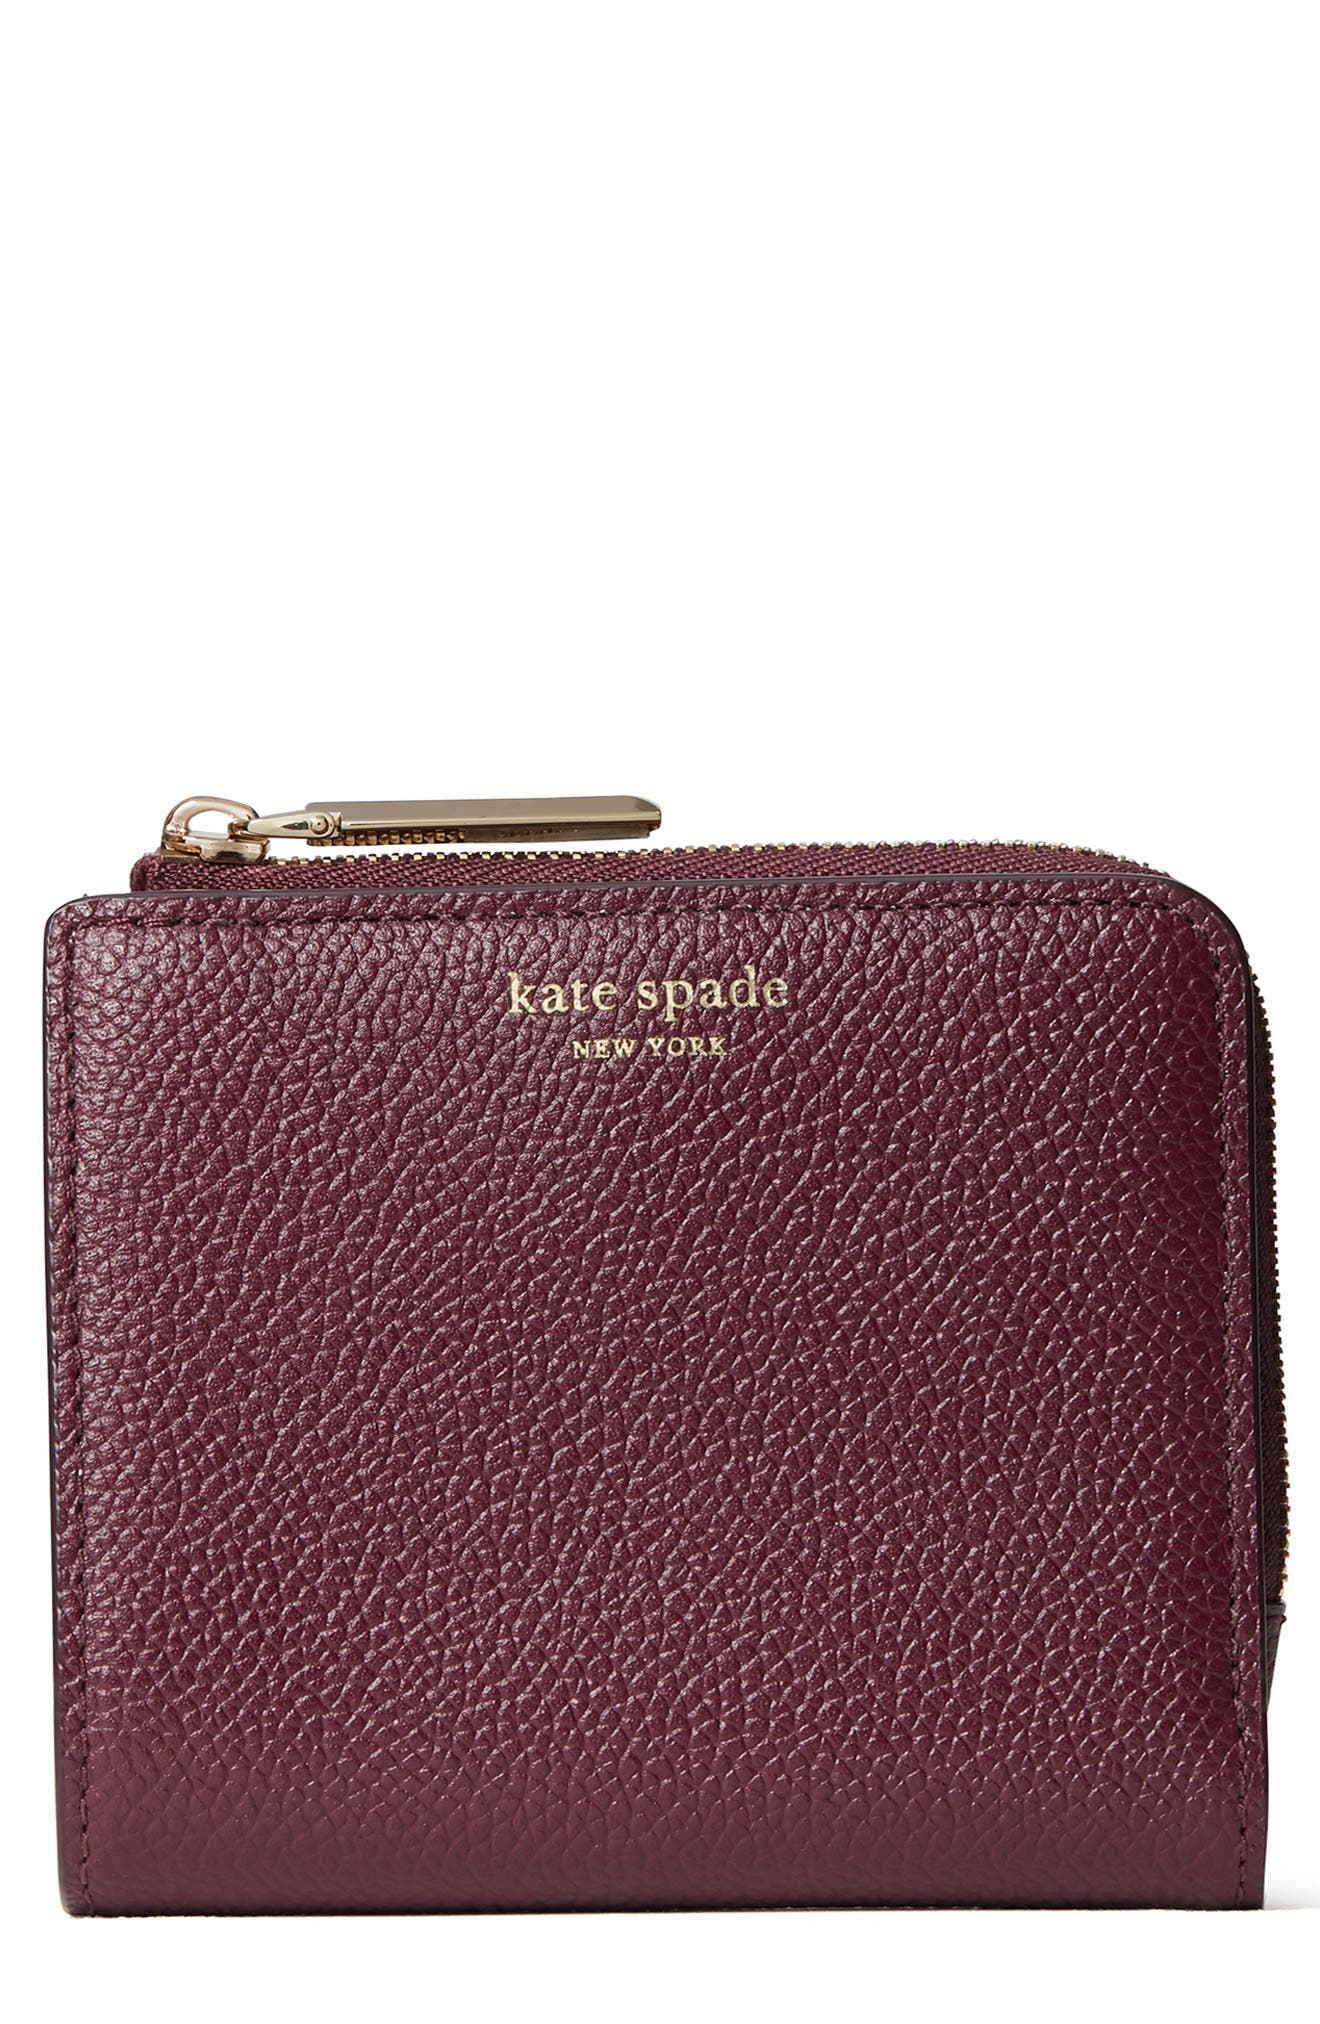 Image of kate spade new york margaux leather bifold wallet